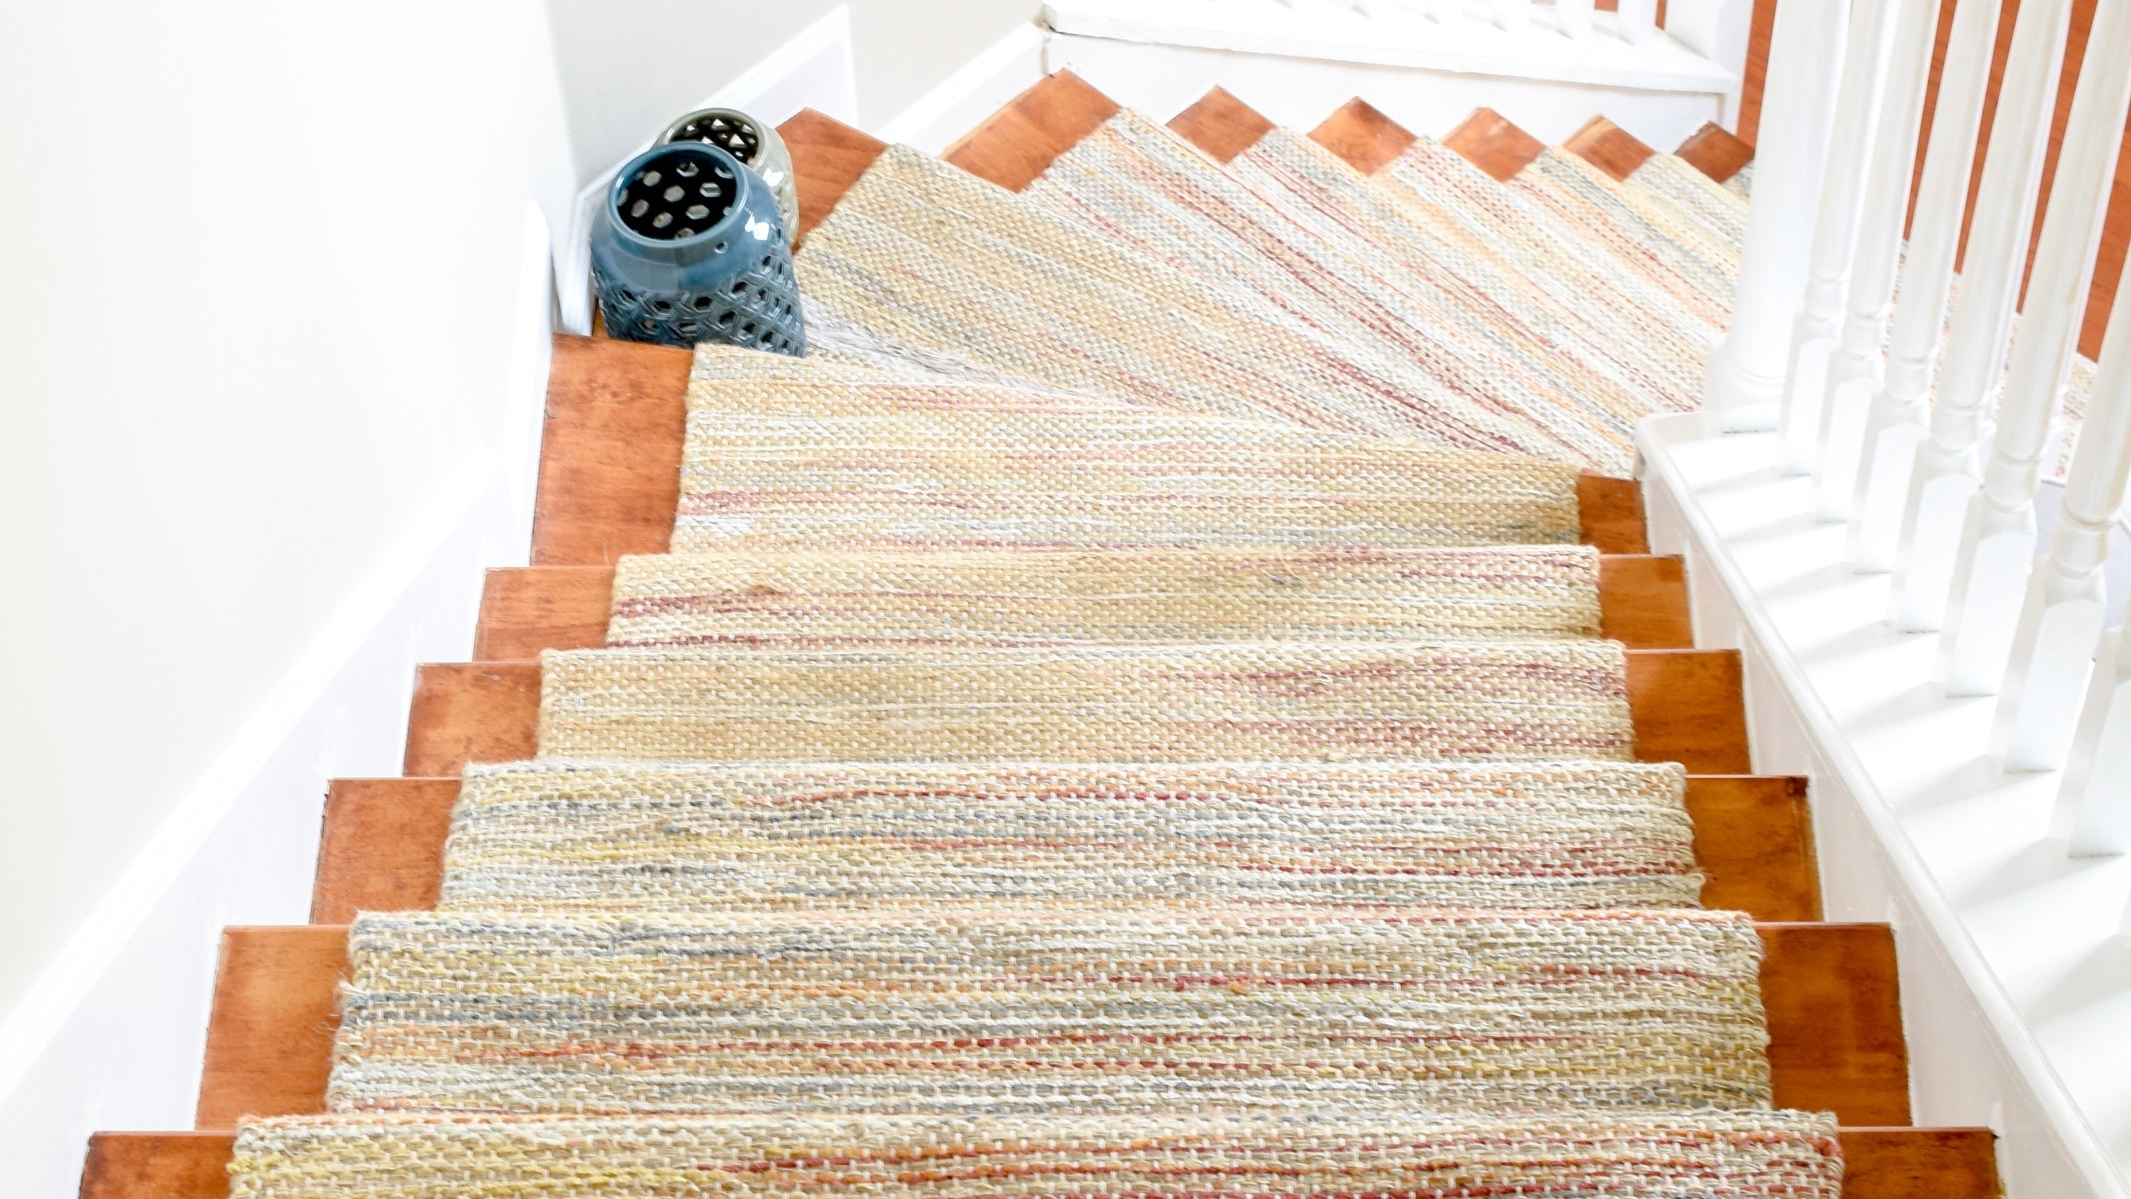 Diy Hardwood Staircase Makeover Replacing Carpet With Wood Treads | Wood Treads And Risers | Step | Coretec Plus | Light Oak | Remodel | Custom